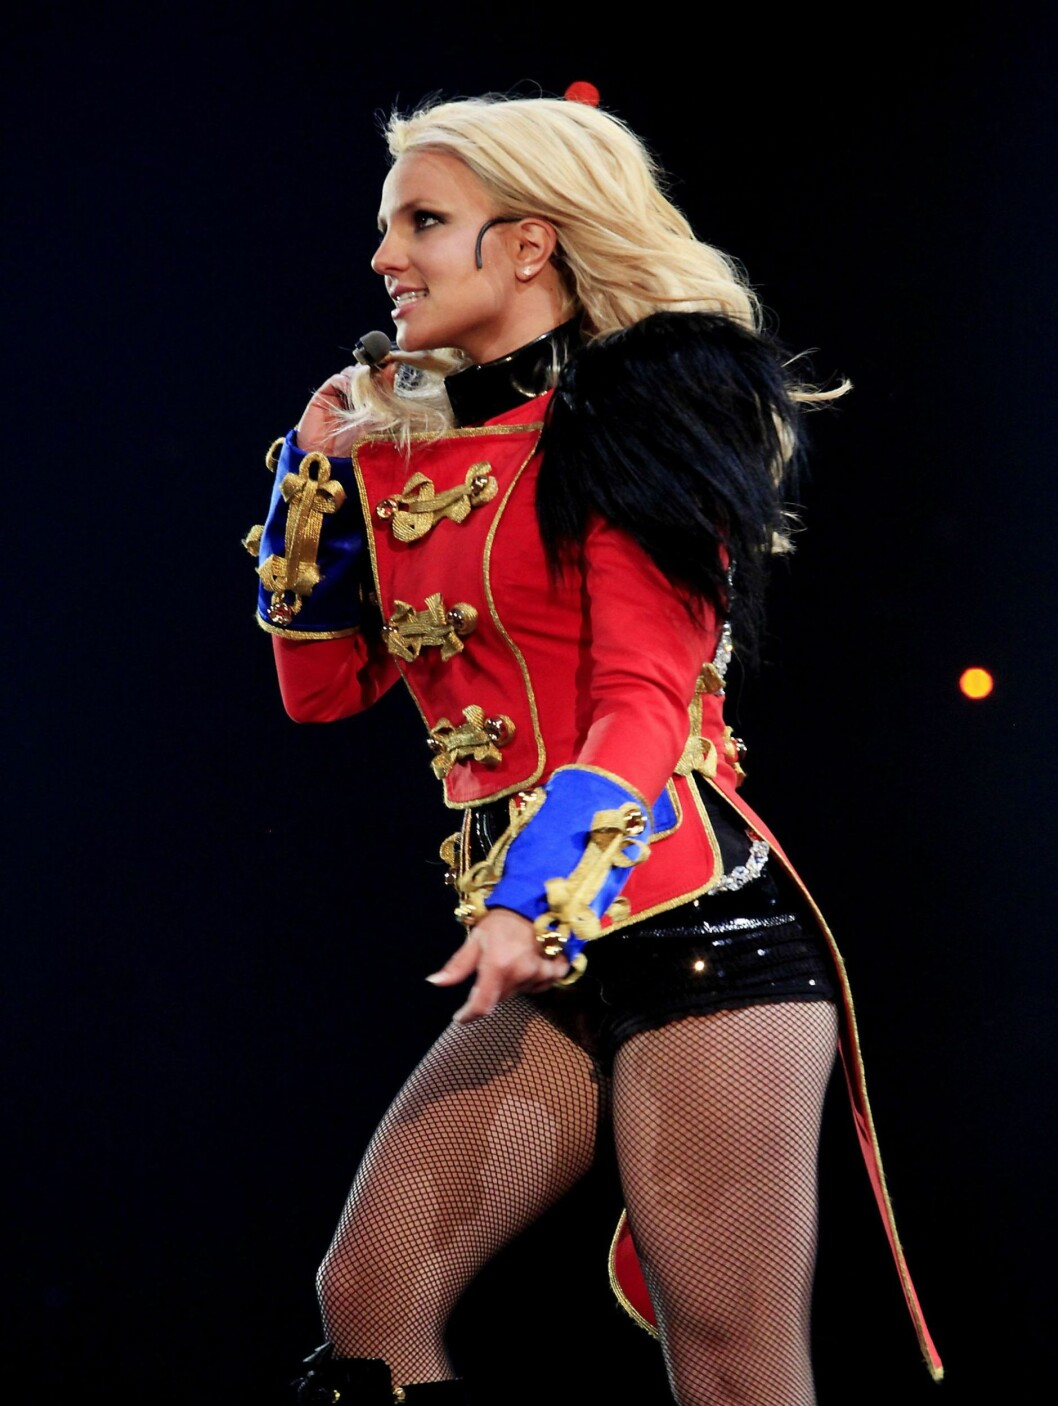 I HOTPANTS: Har Britney Spears latt seg inspirere av Michael Jackson? Foto: All Over Press